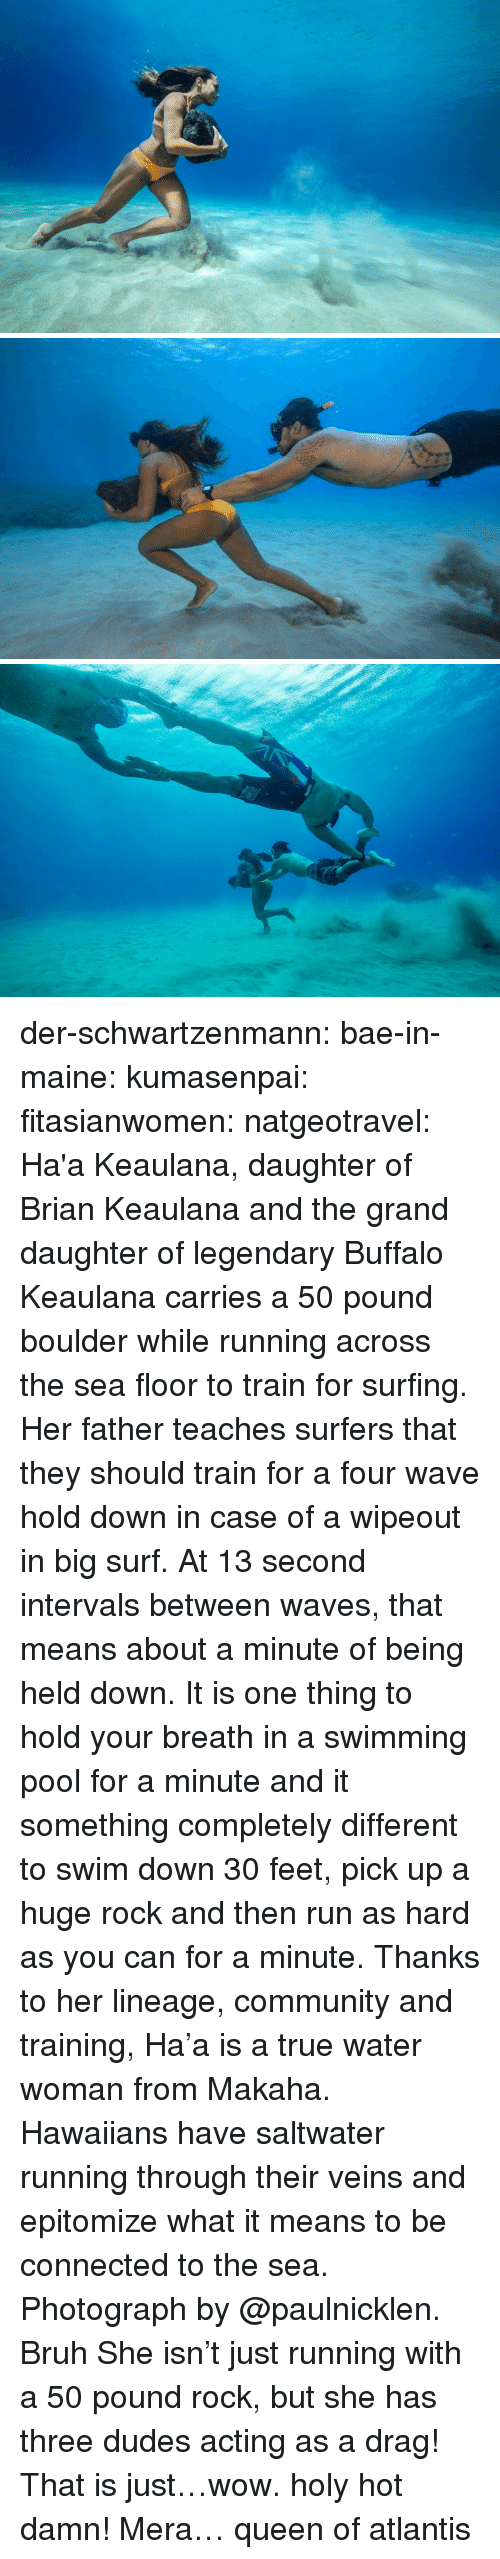 Bae, Bruh, and Community: der-schwartzenmann: bae-in-maine:  kumasenpai:  fitasianwomen:  natgeotravel: Ha'a Keaulana,  daughter of Brian Keaulana and the grand daughter of legendary Buffalo  Keaulana carries a 50 pound boulder while running across the sea floor  to train for surfing. Her father teaches surfers that they should train  for a four wave hold down in case of a wipeout in big surf. At 13 second  intervals between waves, that means about a minute of being held down.  It is one thing to hold your breath in a swimming pool for a minute and  it something completely different to swim down 30 feet, pick up a huge  rock and then run as hard as you can for a minute. Thanks to her  lineage, community and training, Ha'a is a true water woman from Makaha.  Hawaiians have saltwater running through their veins and epitomize what  it means to be connected to the sea.   Photograph by @paulnicklen. Bruh   She isn't just running with a 50 pound rock, but she has three dudes acting as a drag! That is just…wow. holy hot damn!   Mera… queen of atlantis